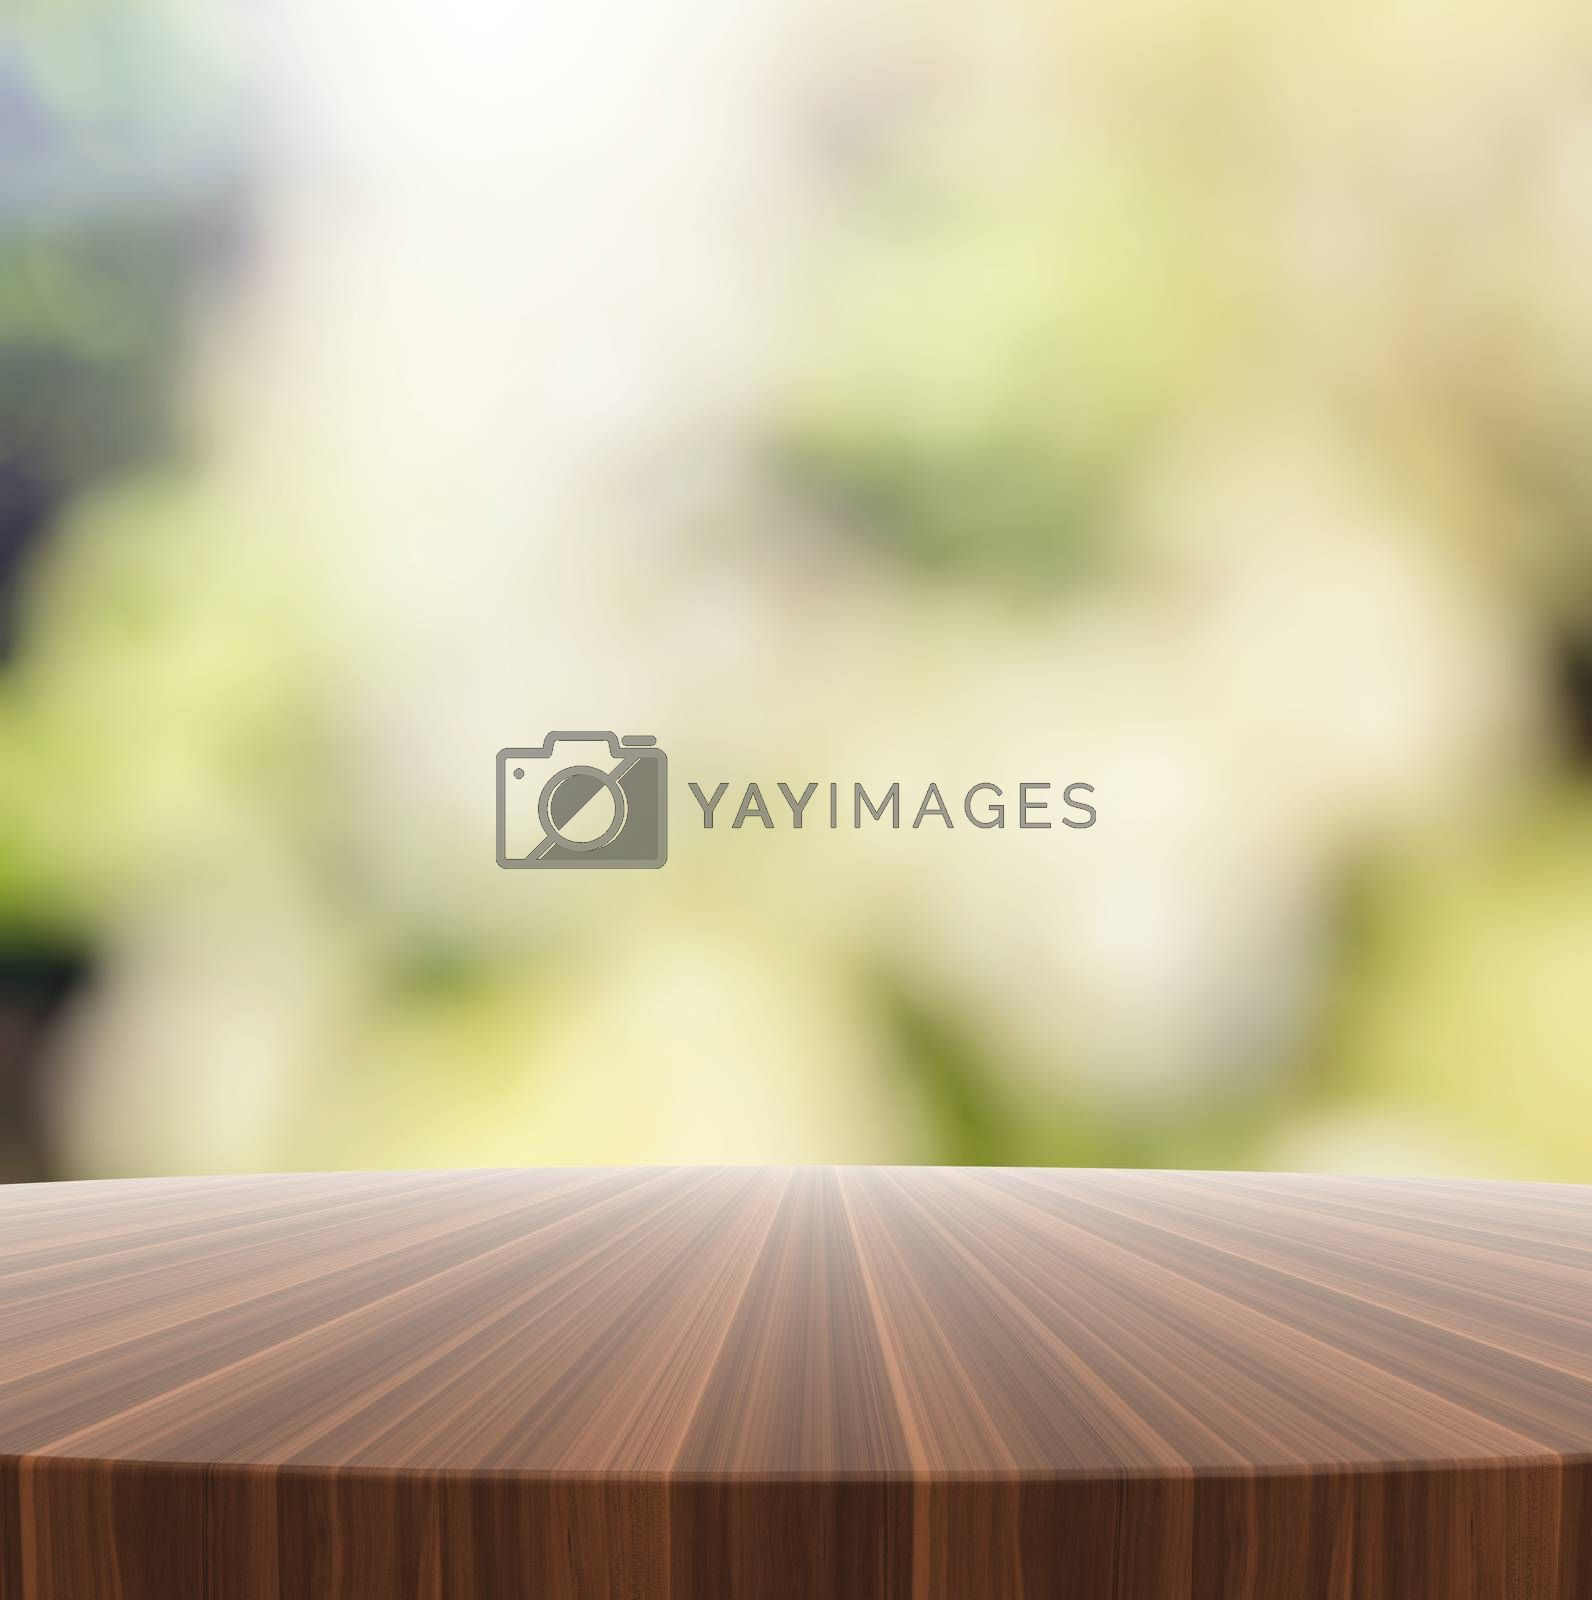 Royalty free image of Empty wooden round table and blurred background for product pres by everythingpossible